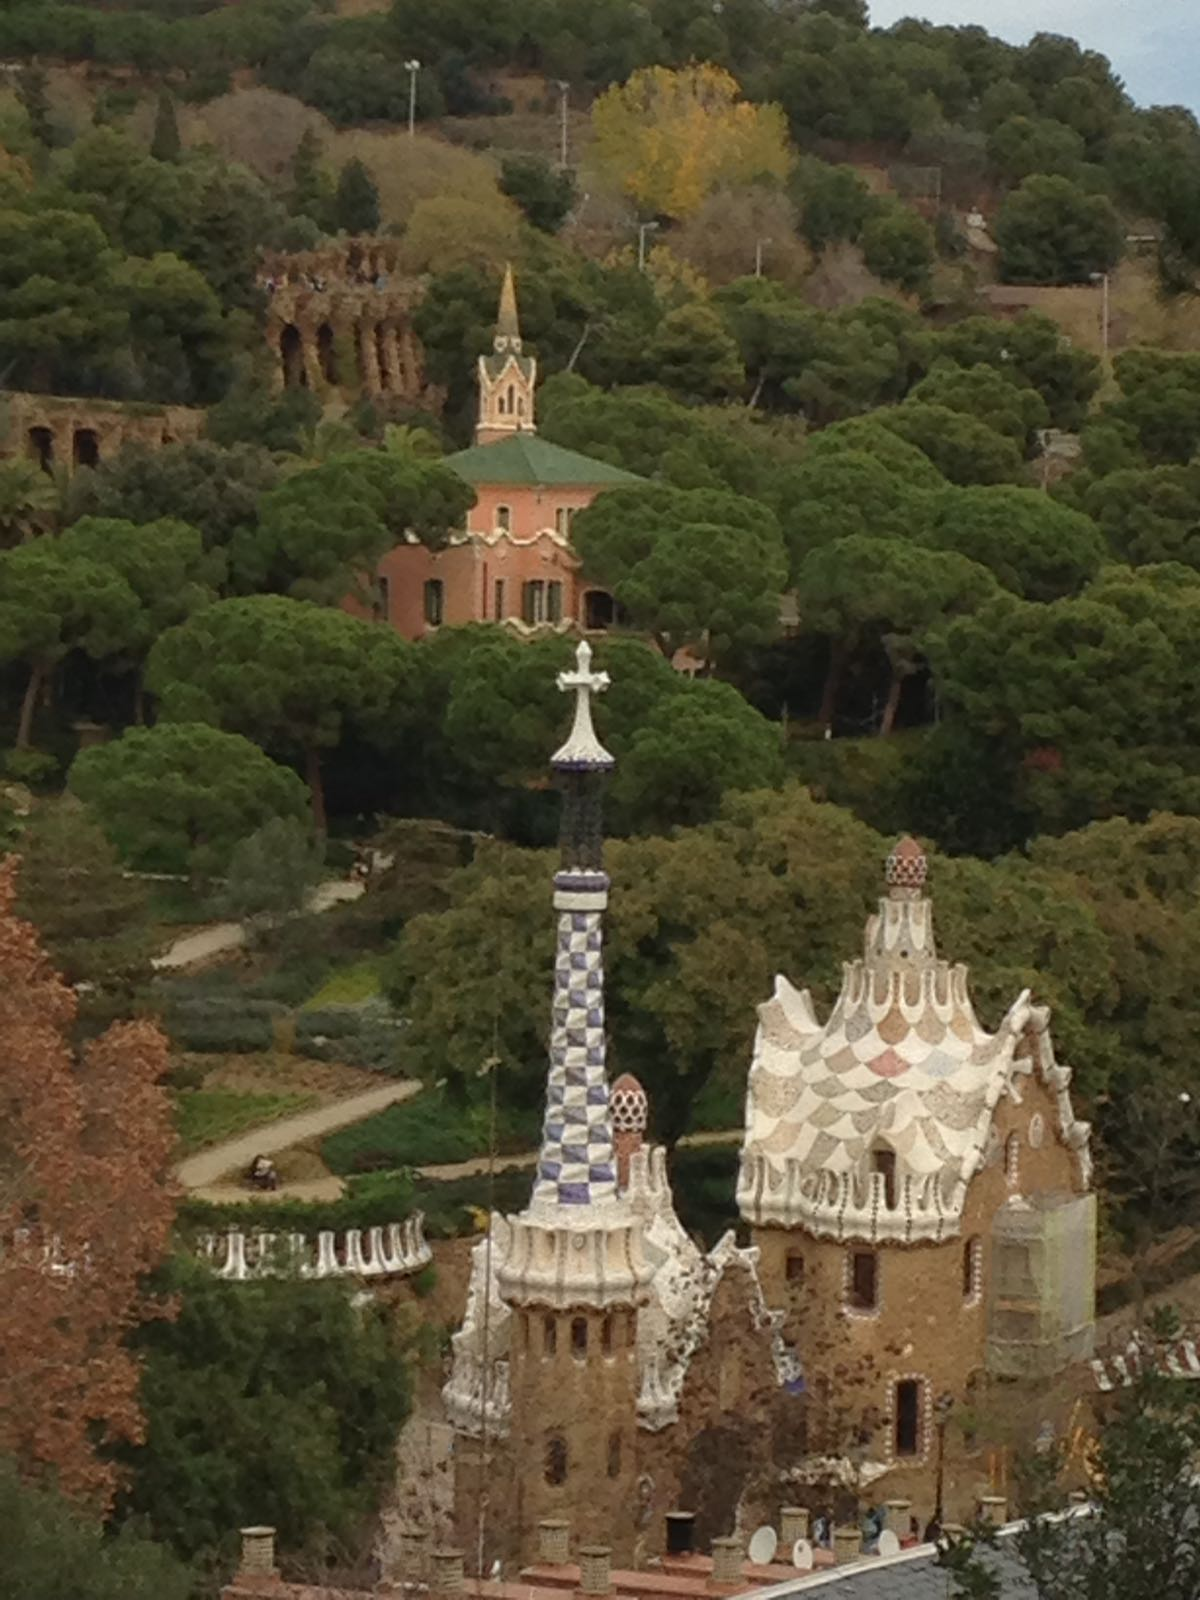 Parc Güell, Barcelona, Spain is part of the UNESCO World Heritage Sites in Europe. Discover more amazing heritage sites in Europe from this article. #UNESCO #unescosites #unescositeseurope #europeunesco #spainunesco #spain